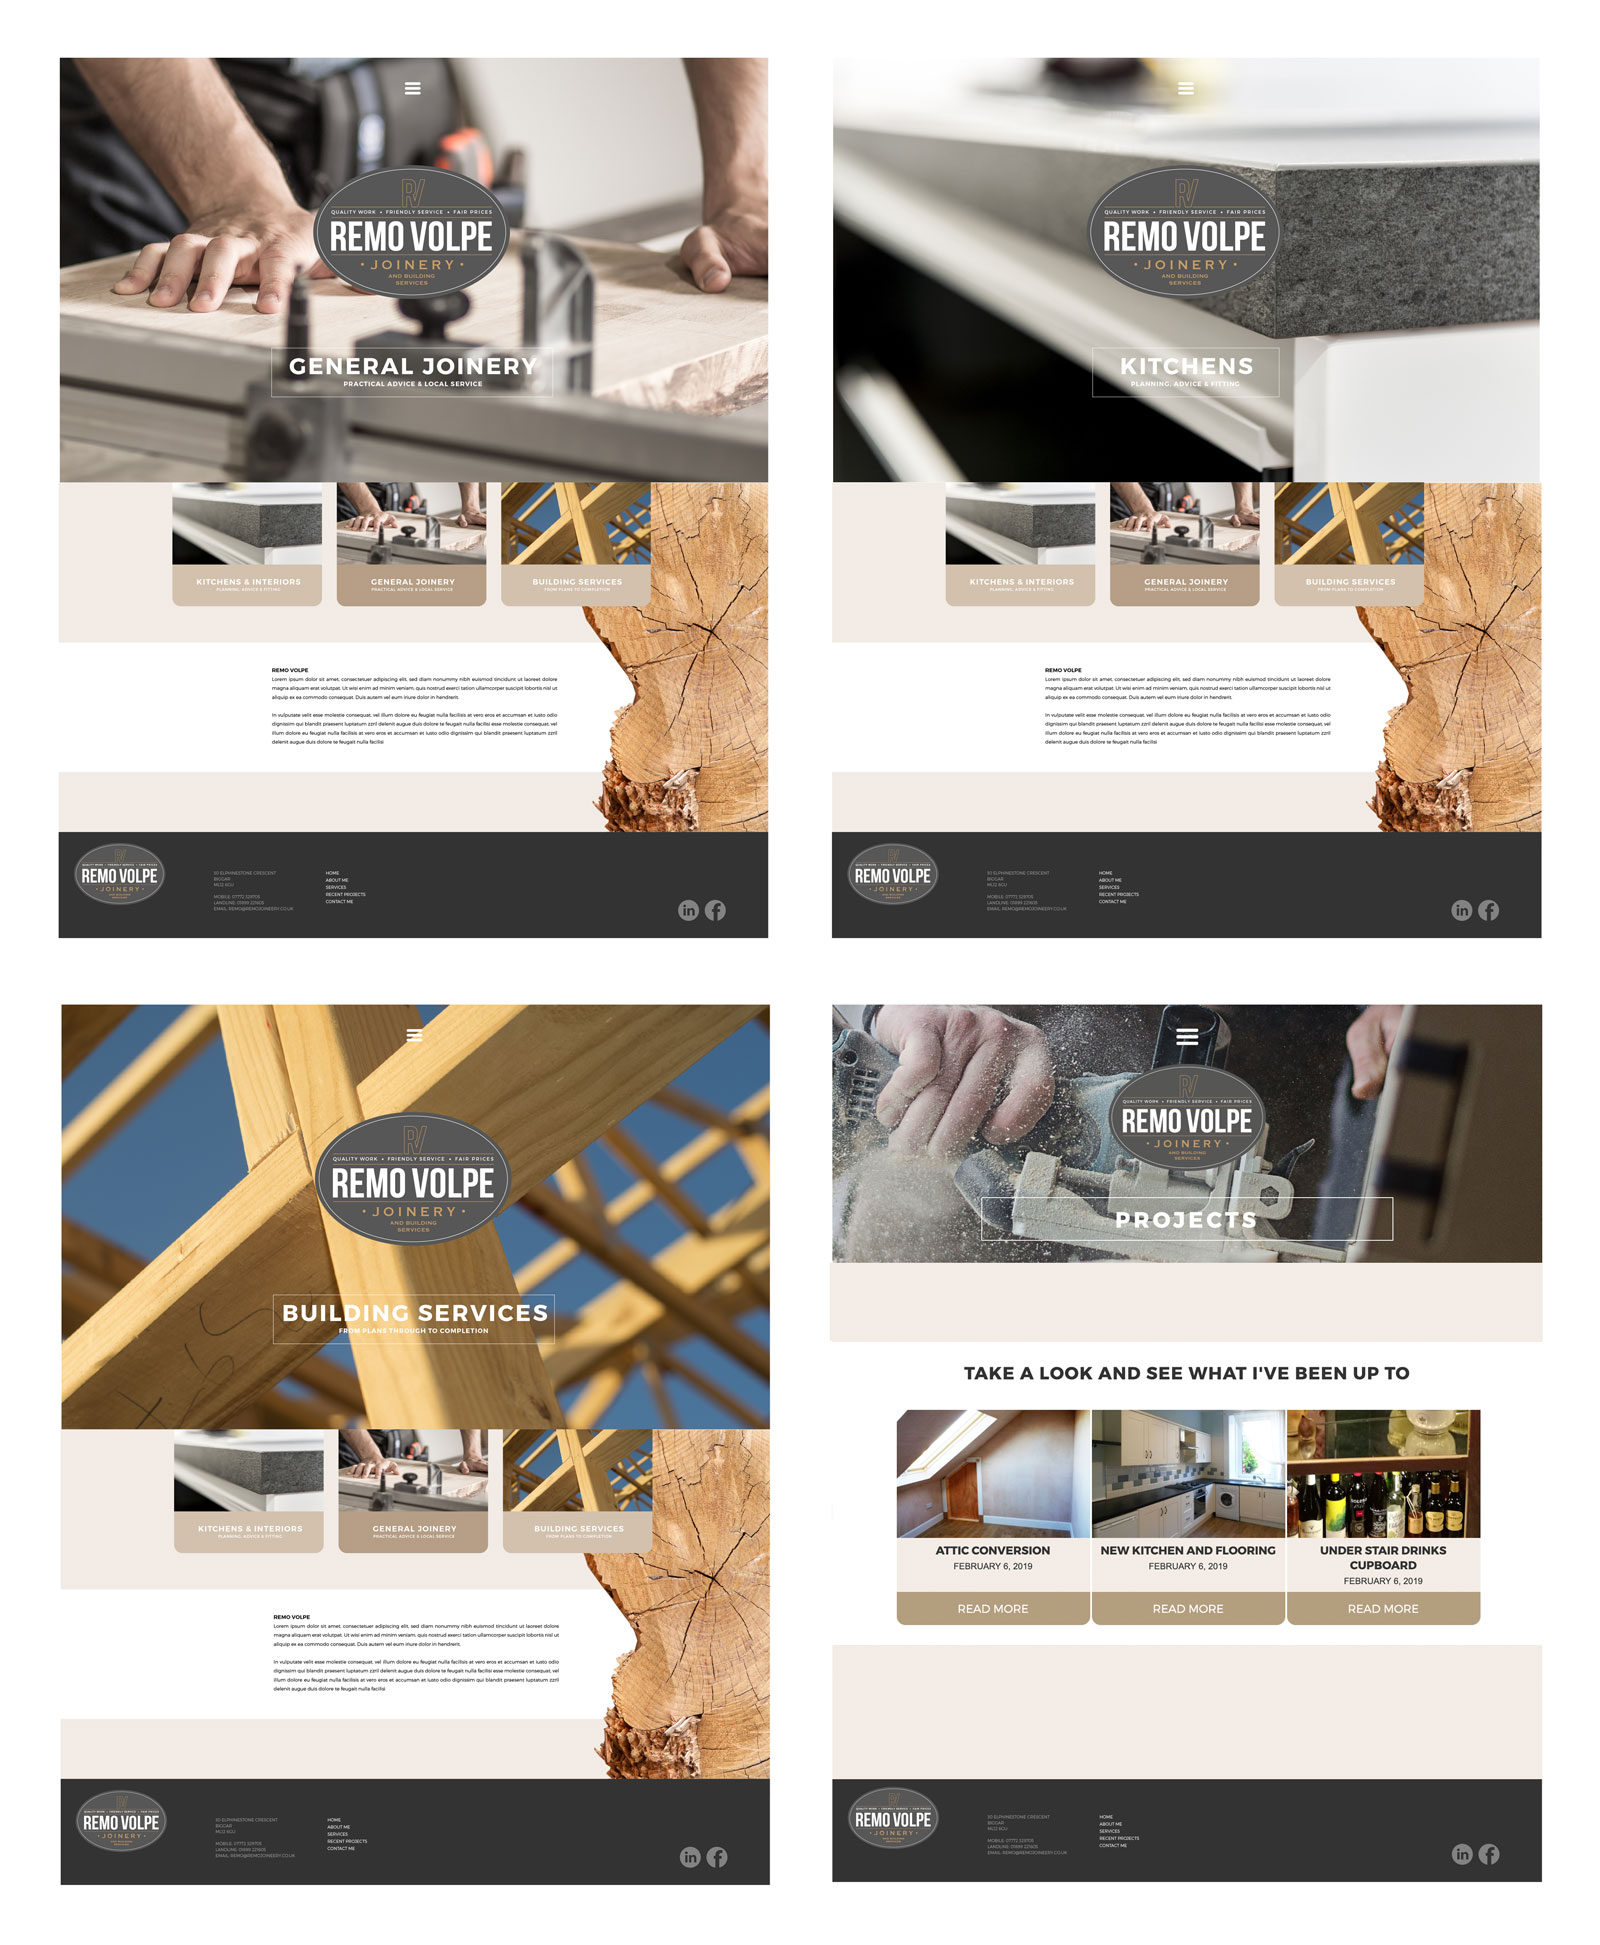 Remo Volpe Joinery Services Branding & Website Design